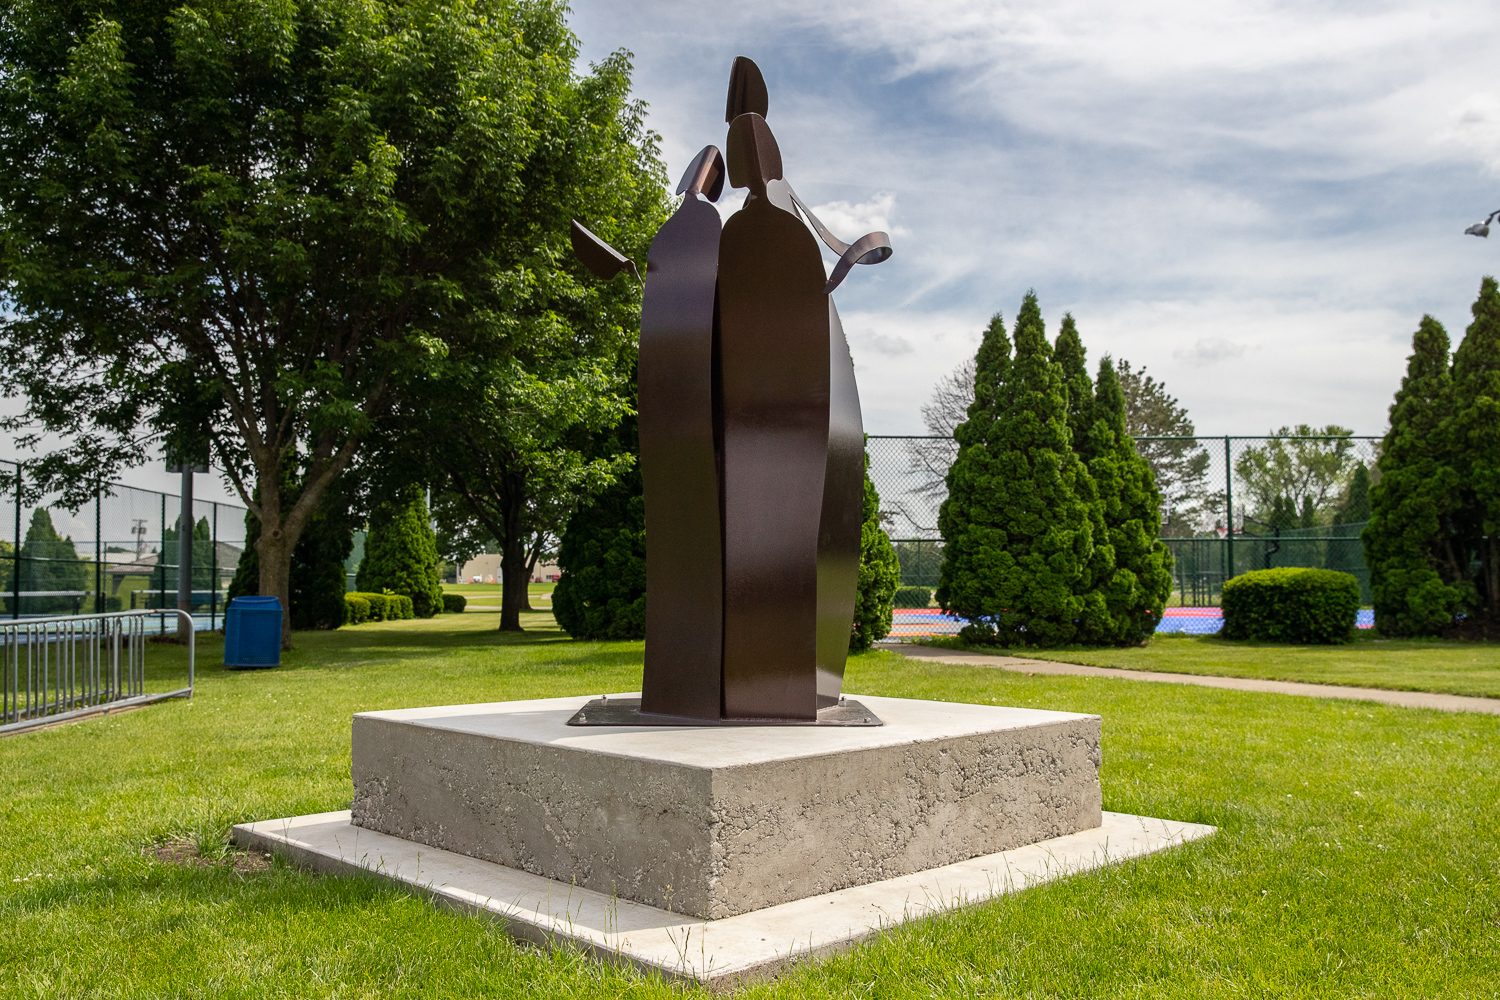 A statue dedicated to University of Iowa student Mollie Tibbetts is seen at Ahrens Park in Grinnell, Iowa on Thursday, June 6, 2019. Tibbetts died last summer. The statue created by Dubuque artist Gail Chavenelle was installed on May 18, 2019. (Wyatt Dlouhy/The Daily Iowan)